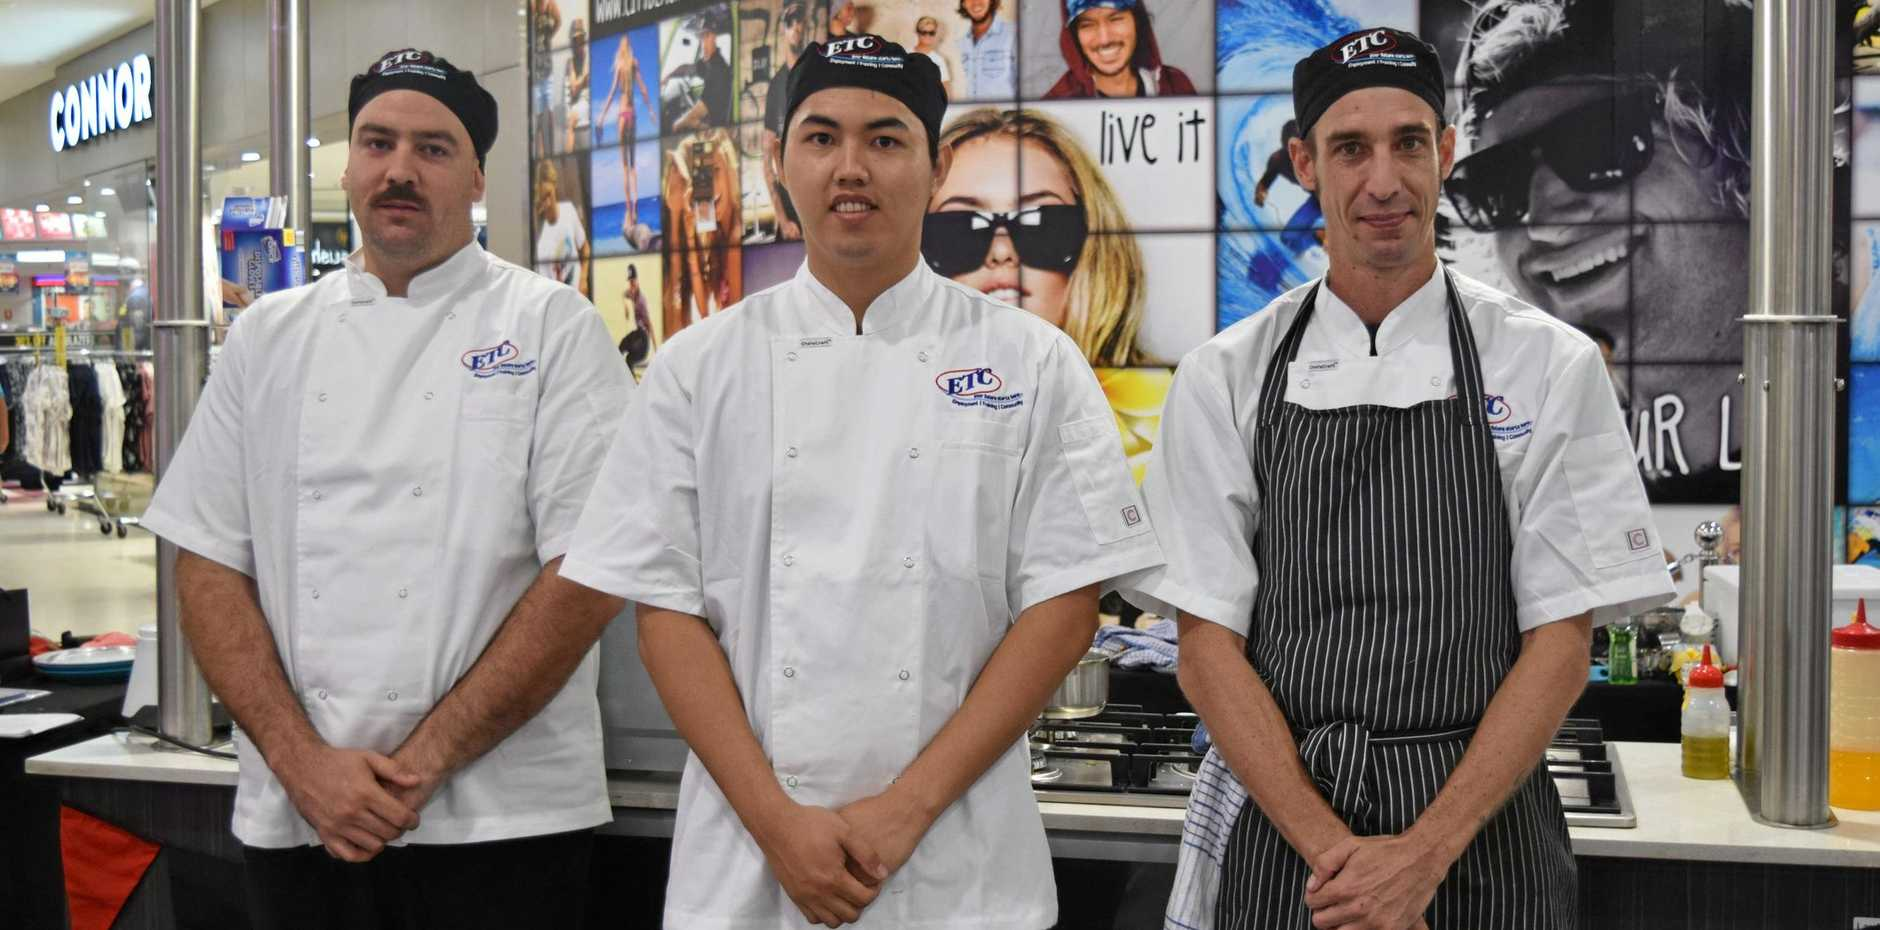 NEW TALENT: From left: Carool's Jayden Ross, Tweed Heads' Mac Palencia and eventual winner Lismore's Joe Carrall at the Lismore competition cook-off for the inaugural ETC Apprentice of the Year. Mr Carrall will compete against the winners of the other two rounds at the grand finale cook-off to be held in Coffs Harbour in July.